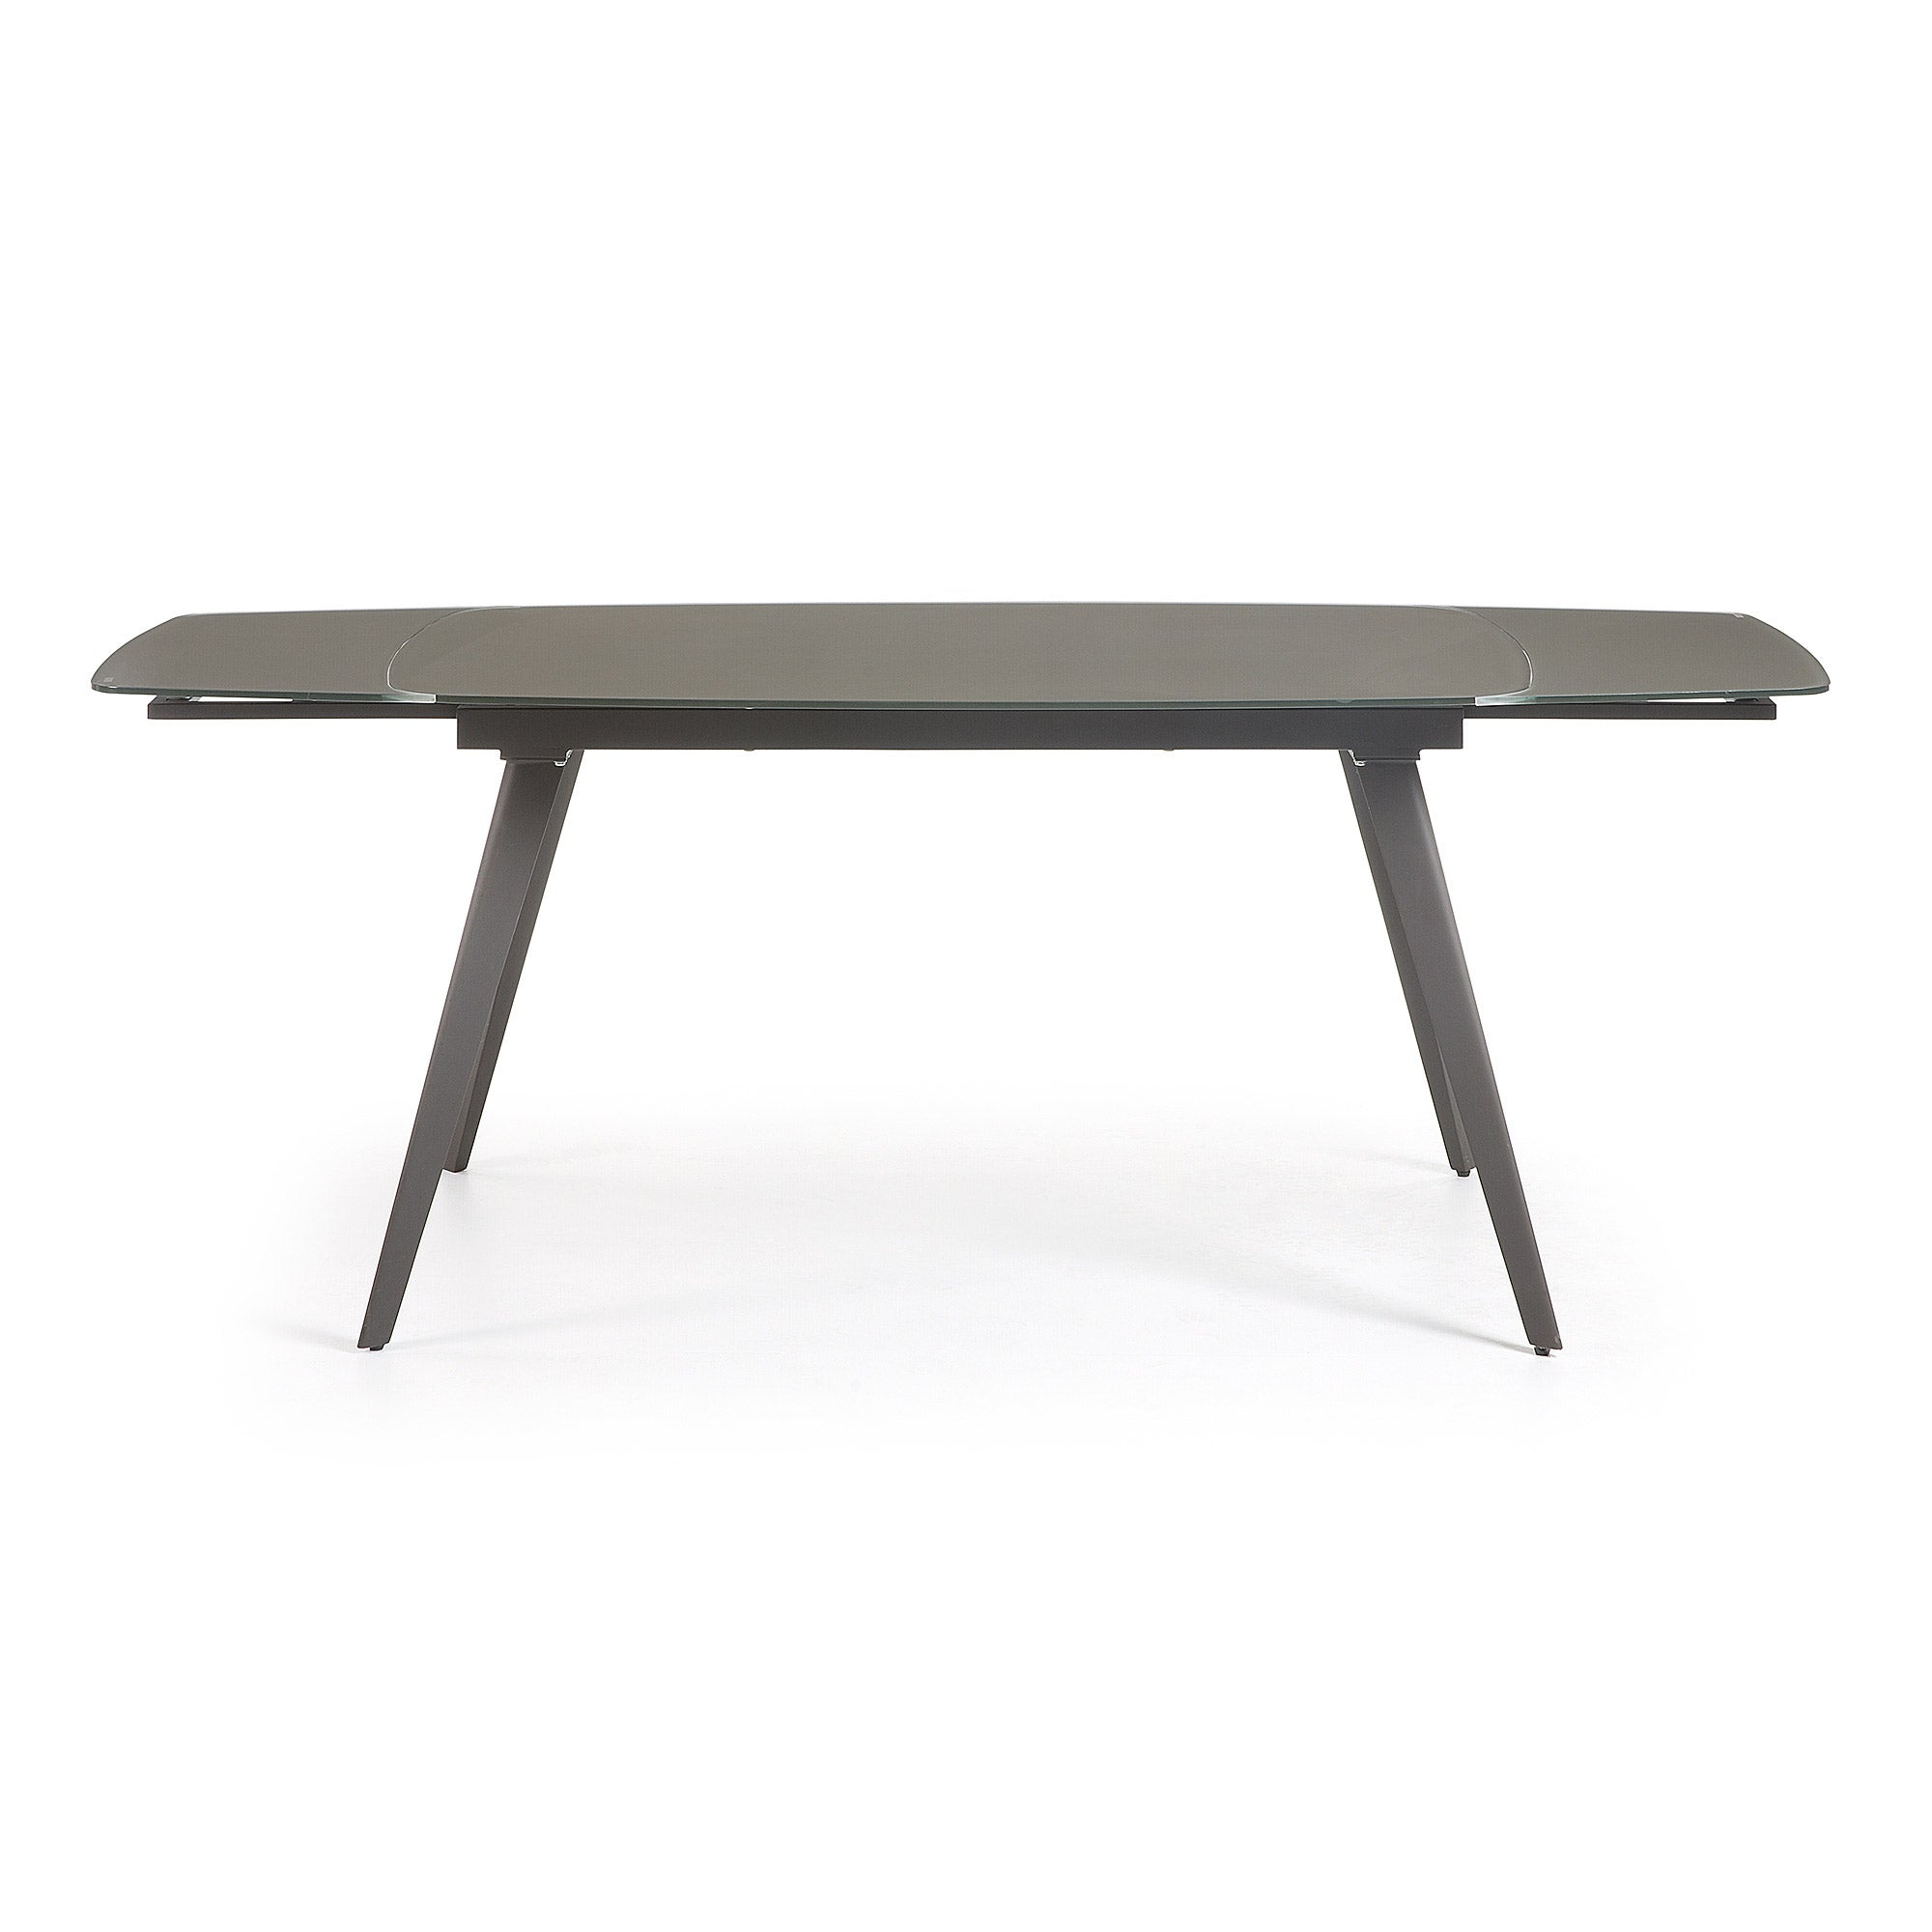 Fraser Table - Anthracite Glass, Table - Home-Buy Interiors